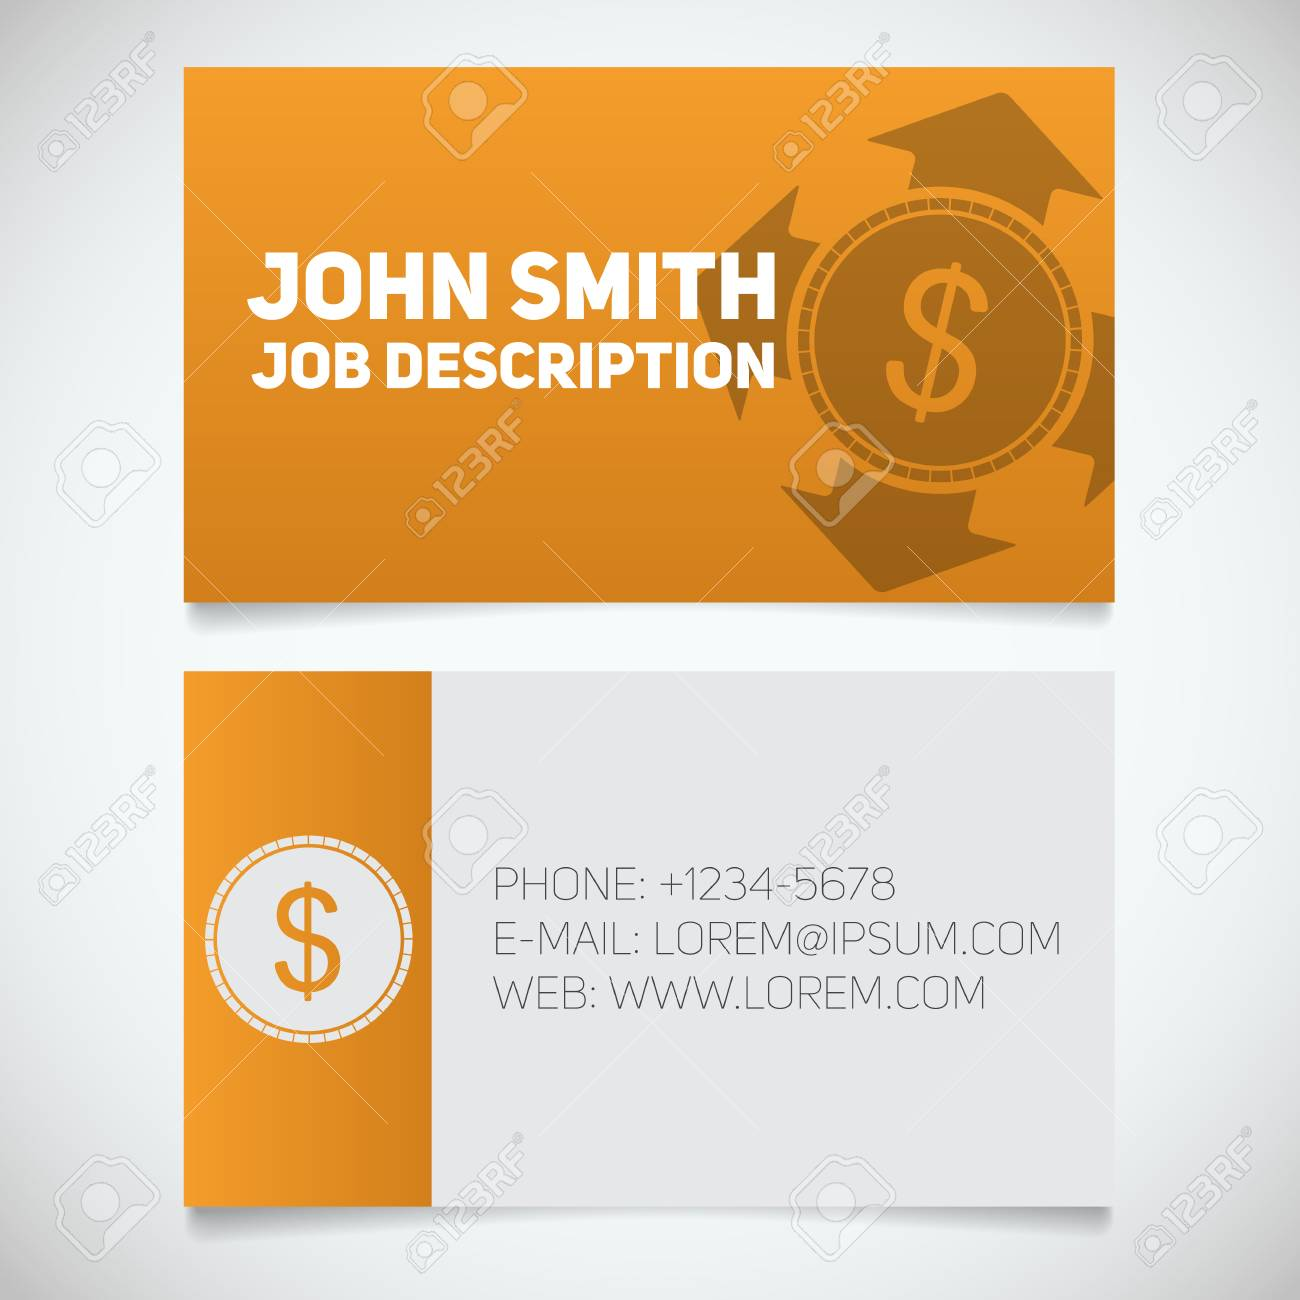 Business card print template with money spending logo easy edit business card print template with money spending logo easy edit manager accountant reheart Choice Image